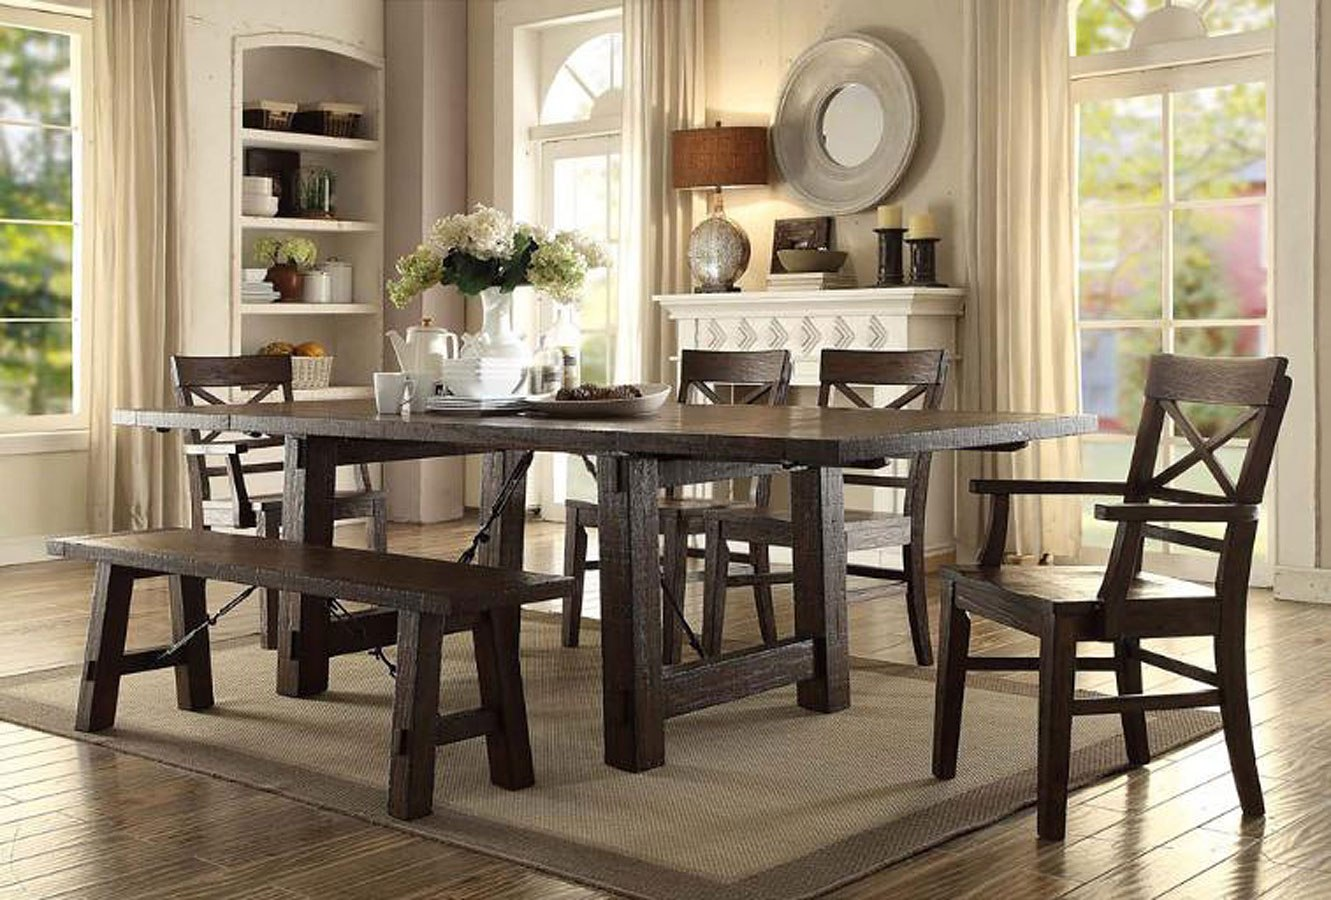 Gettysburg Trestle Dining Room Set ECI Furniture | Furniture Cart